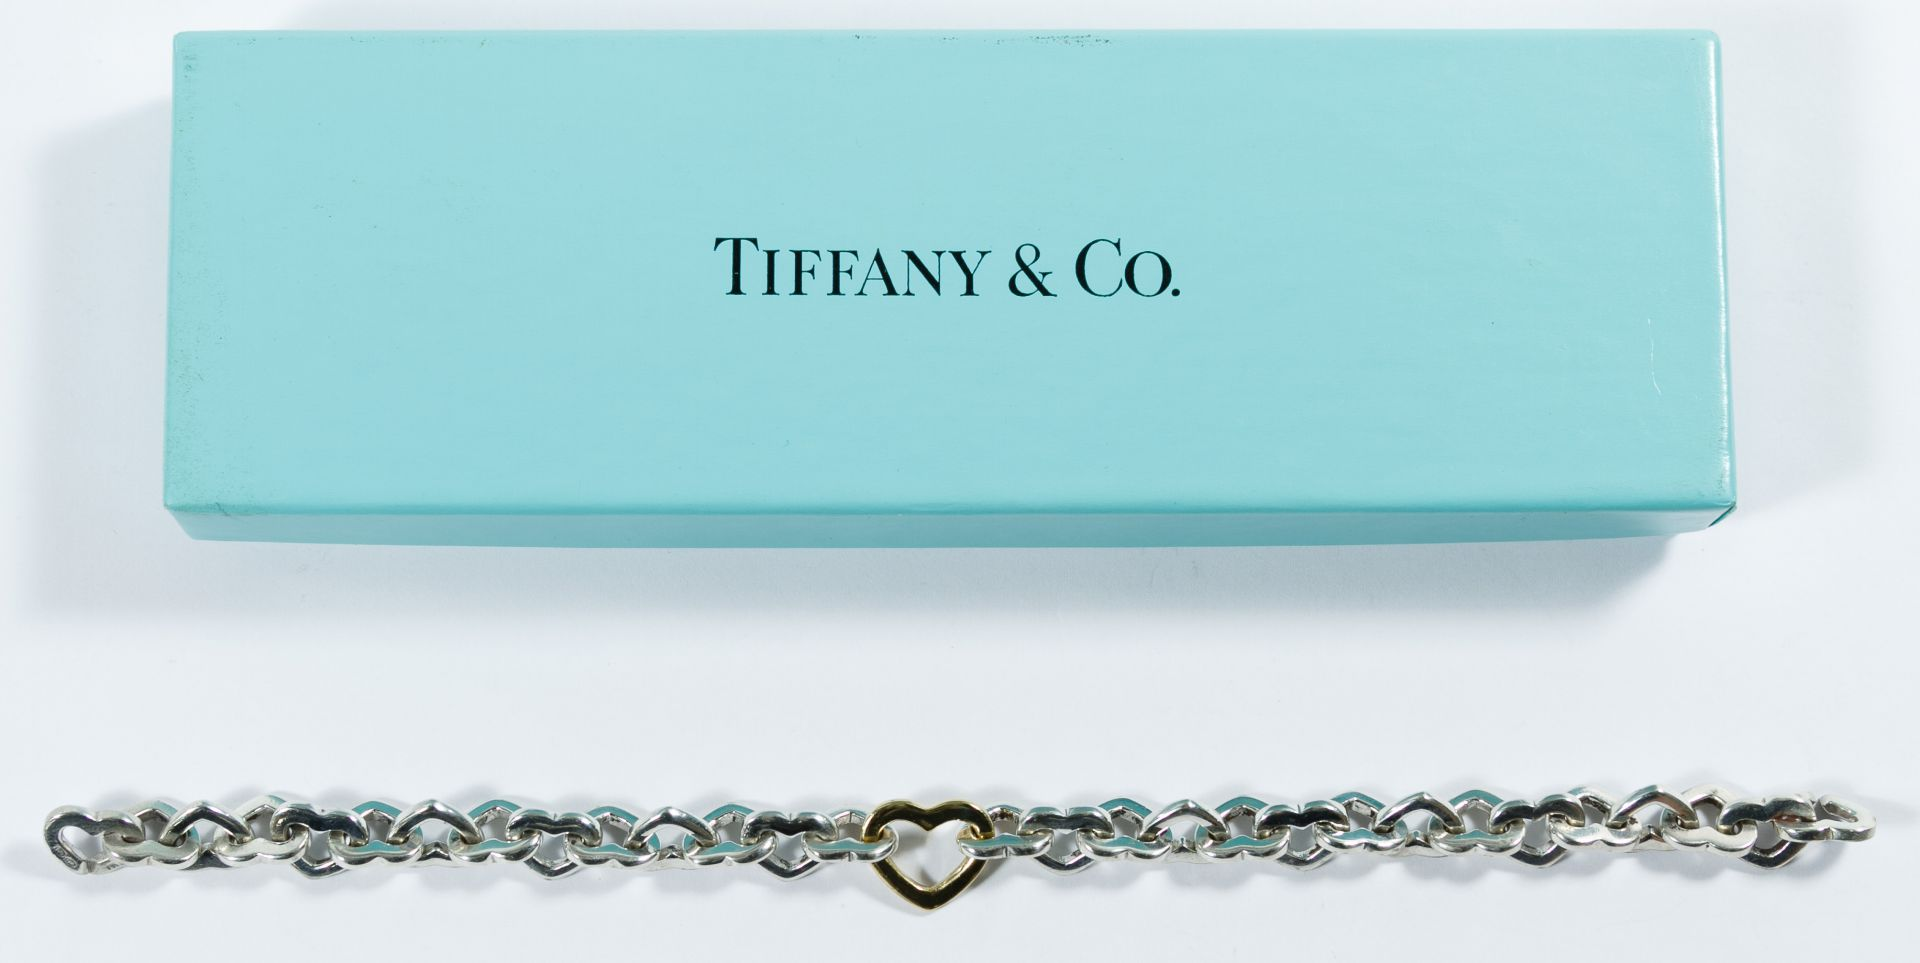 66ddb853013 Lot 267: Tiffany & Co. Sterling Silver and 18k Gold Heart Link ...